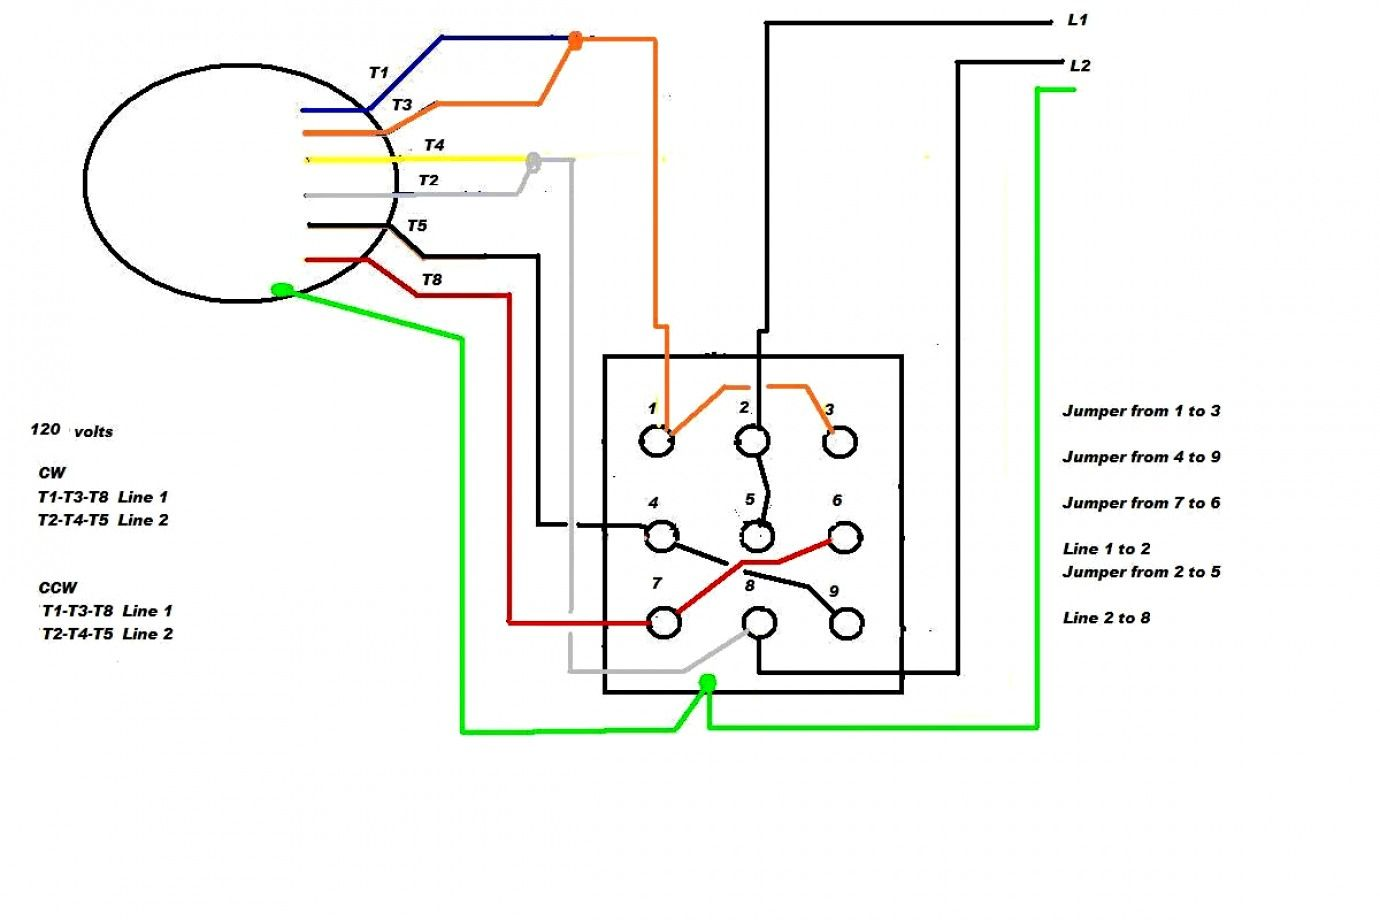 Groovy 3 Wire Single Phase Wiring Diagram Wiring Diagram M6 Zipur Mohammedshrine Wiring Diagrams Zipurmohammedshrineorg